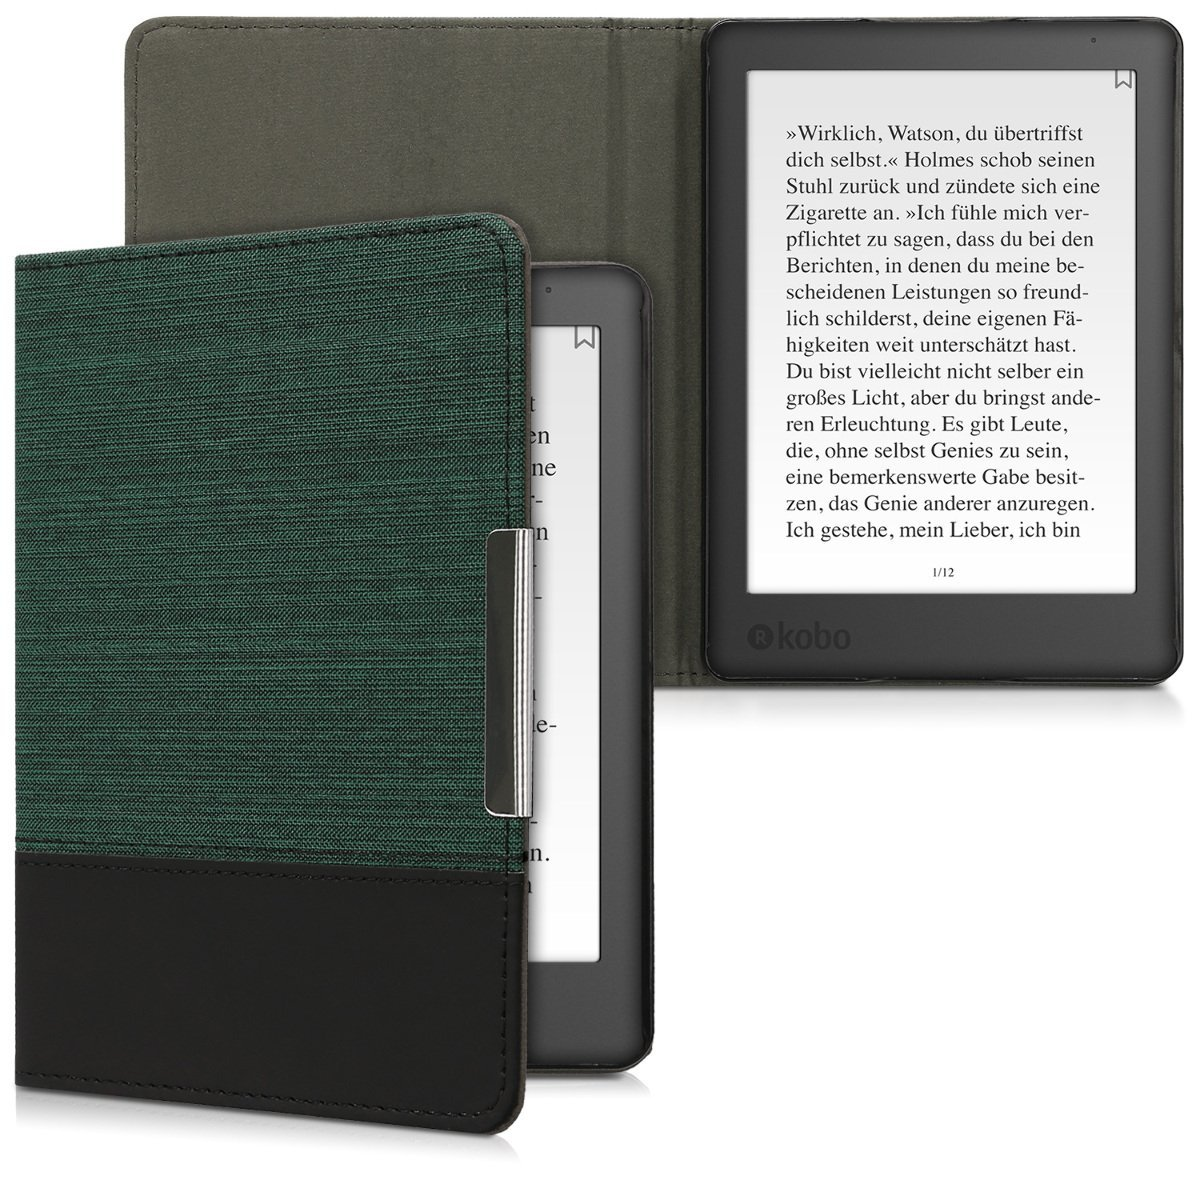 kwmobile Case for Kobo Aura Edition 2 - PU Leather and Canvas Protective e-Reader Cover Folio Case - green black